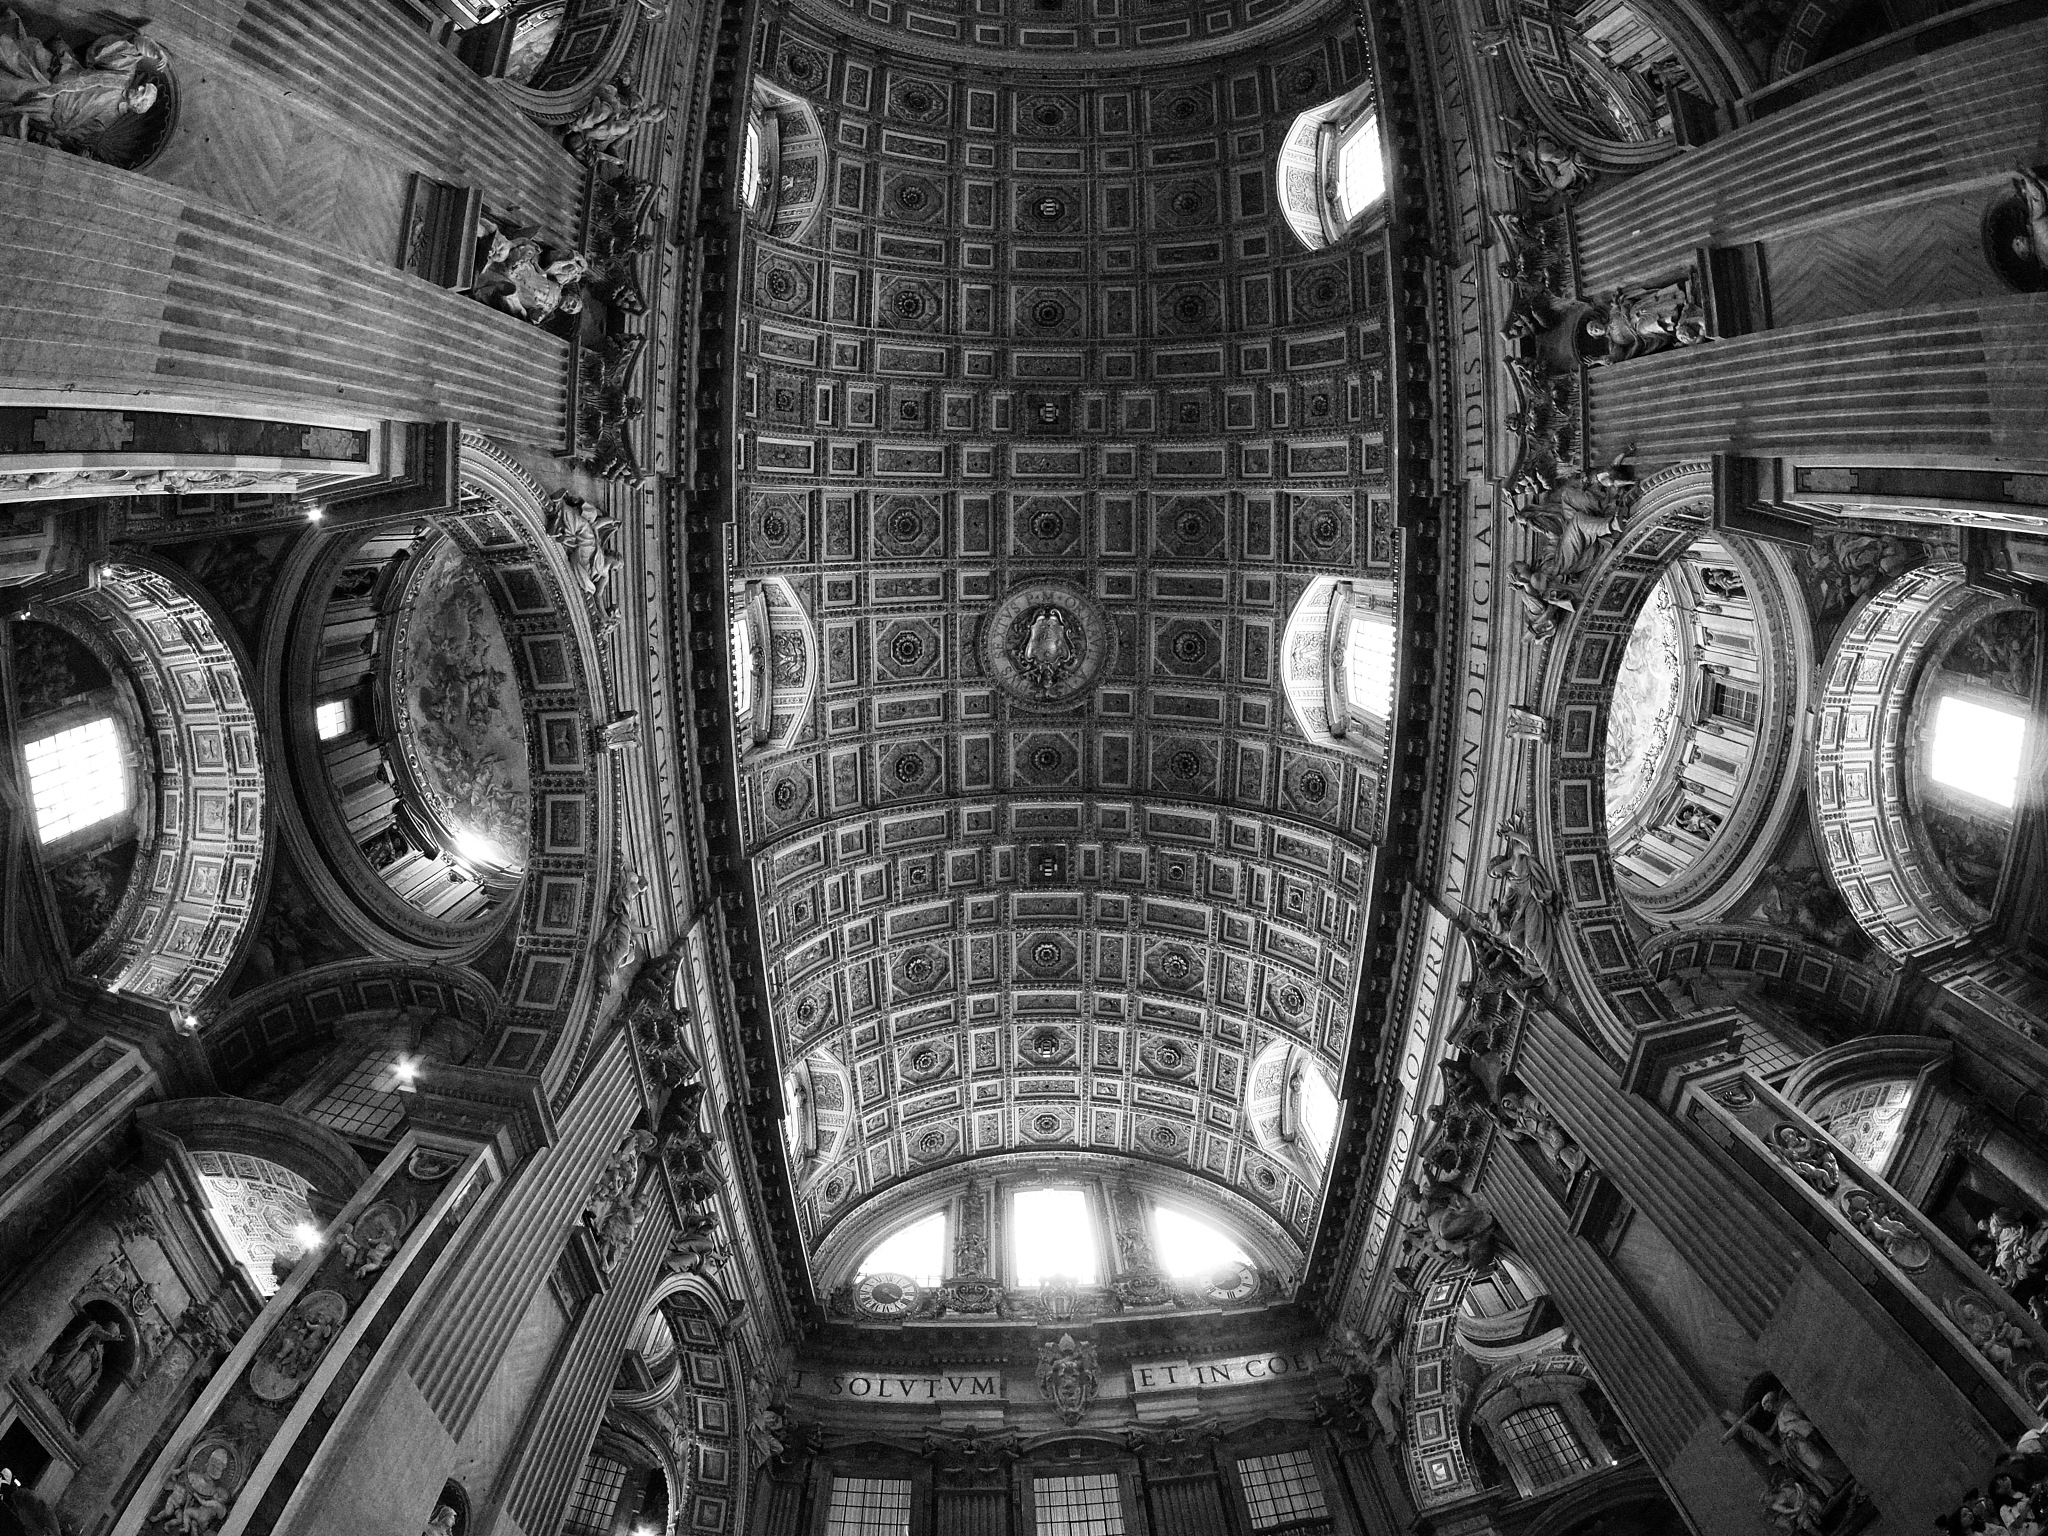 Looking up by Philip S.